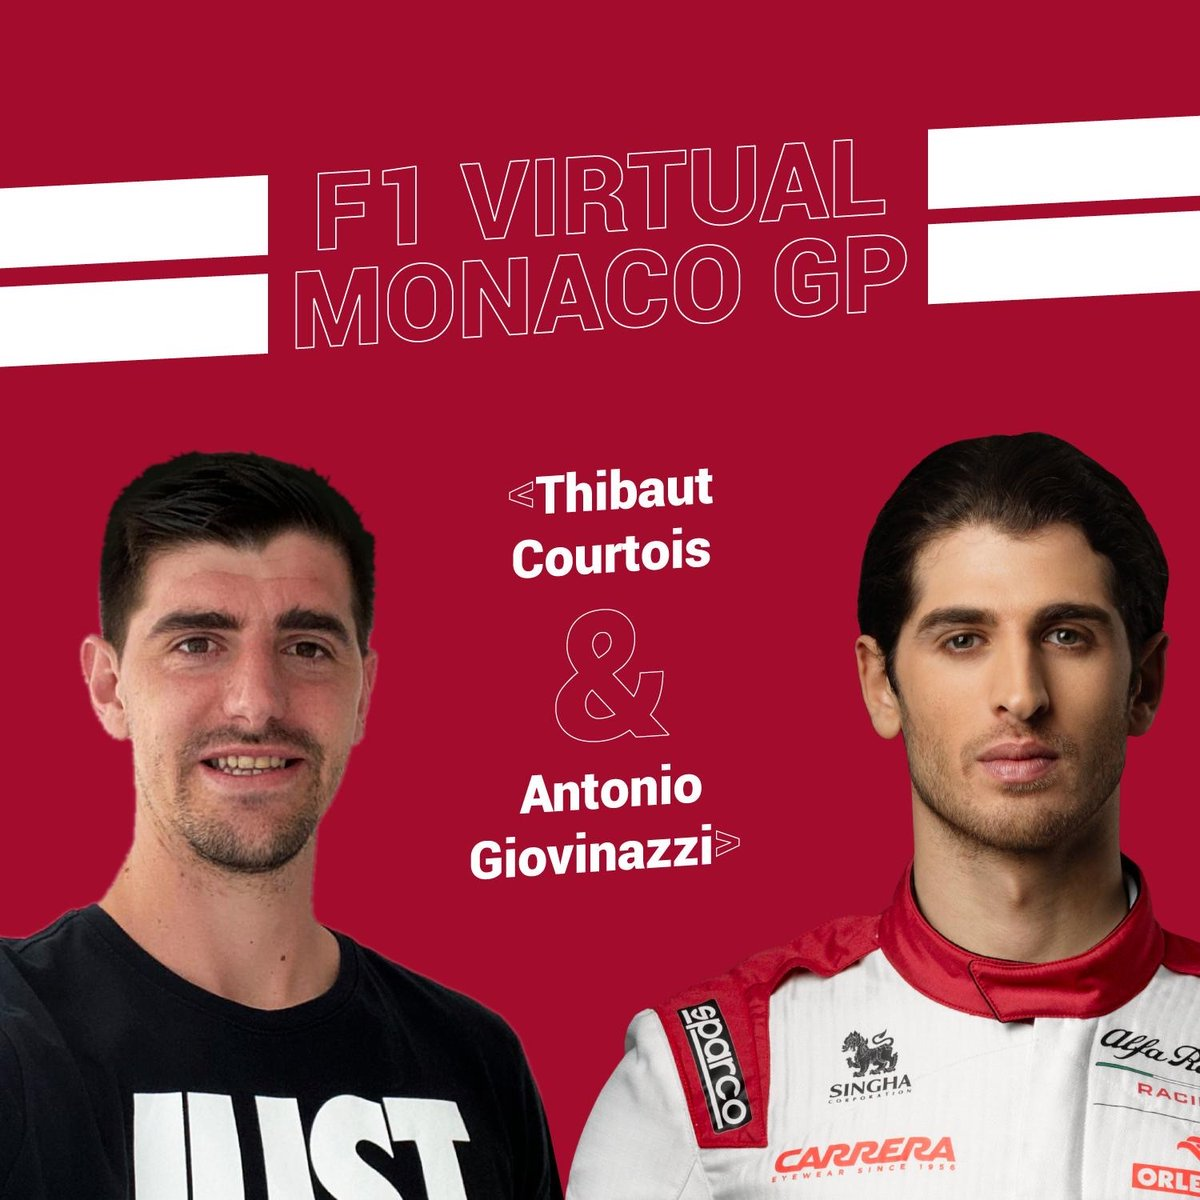 It's time to take on the streets of Monaco! ⚡️  @Anto_Giovinazzi and @thibautcourtois return to esports action this weekend at one of the most iconic circuits on the calendar! 🤩🇲🇨  Sunday 24 - 18:00h BST 🍿  @F1 #VirtualGP #F1Esports https://t.co/ZG6xnGbjnn